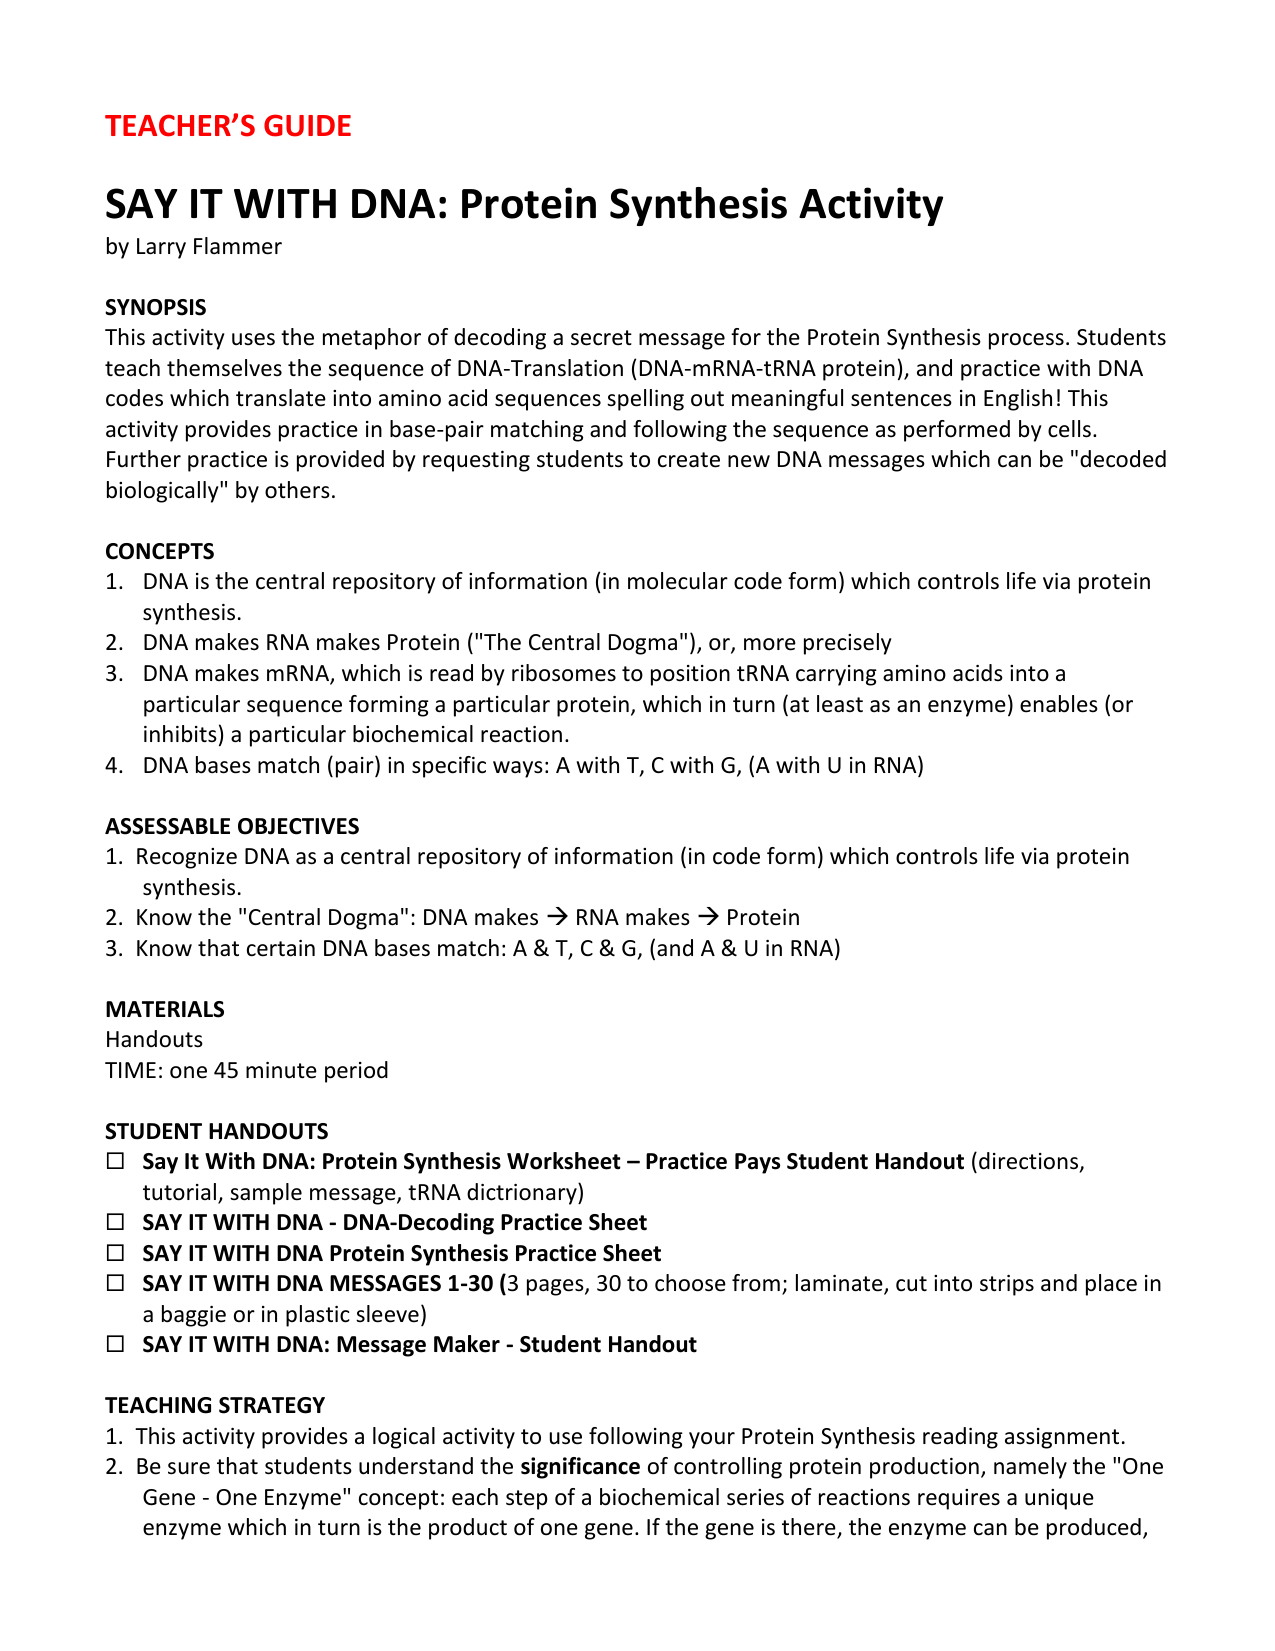 Say It With Dna Protein Synthesis Worksheet Practice For Say It With Dna Protein Synthesis Worksheet